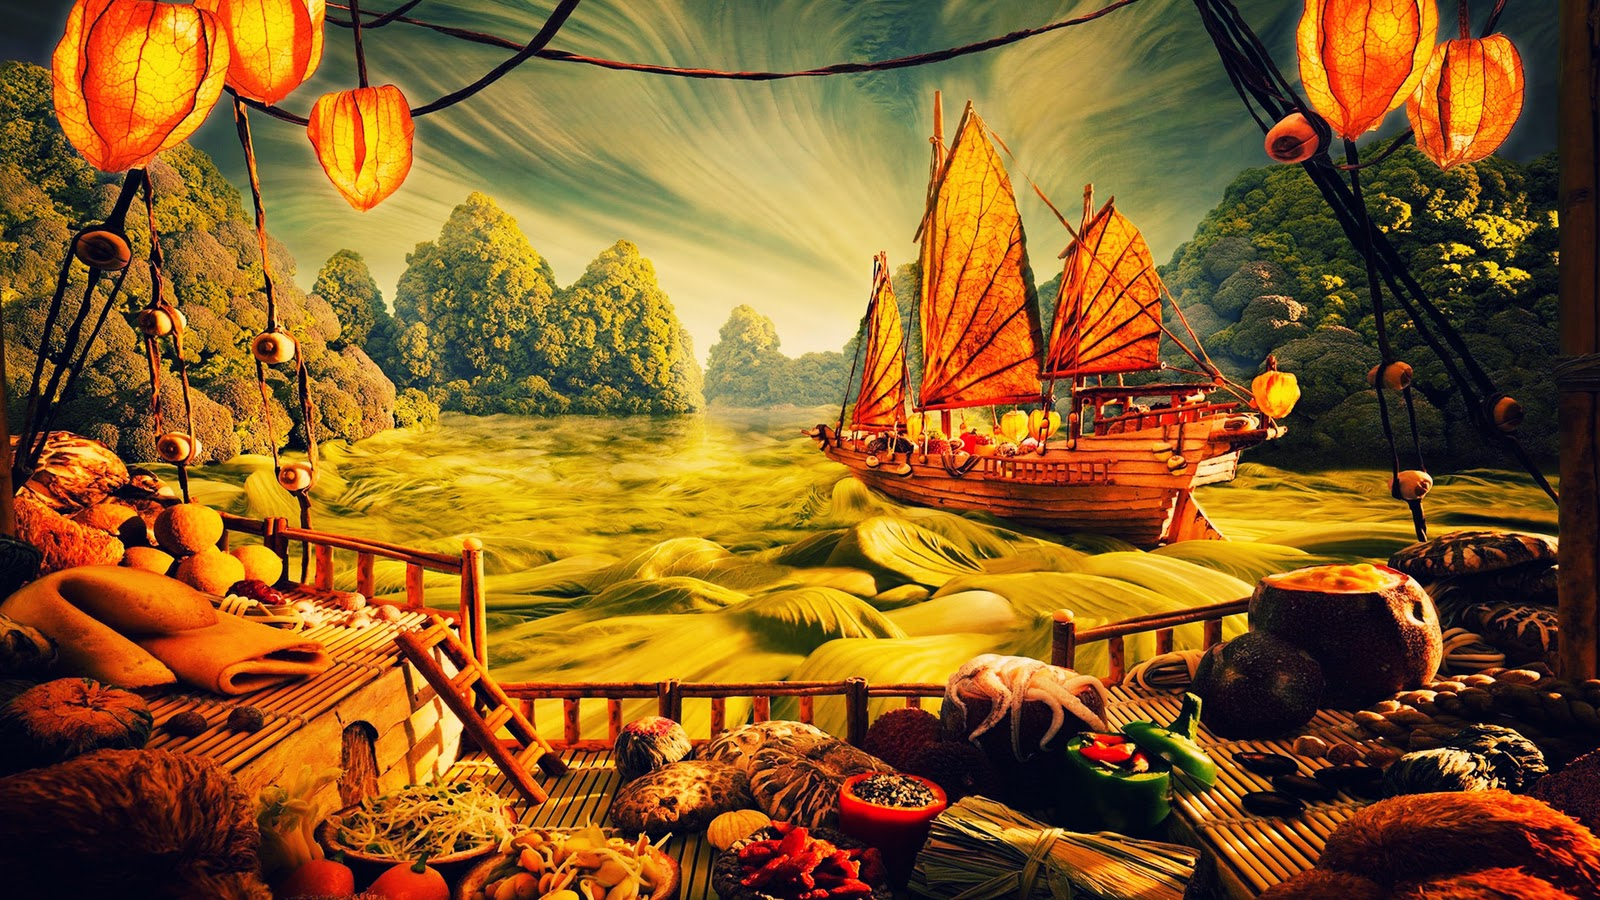 Animated wallpapers for windows xp wallpapersafari - Anime moving wallpaper for pc ...